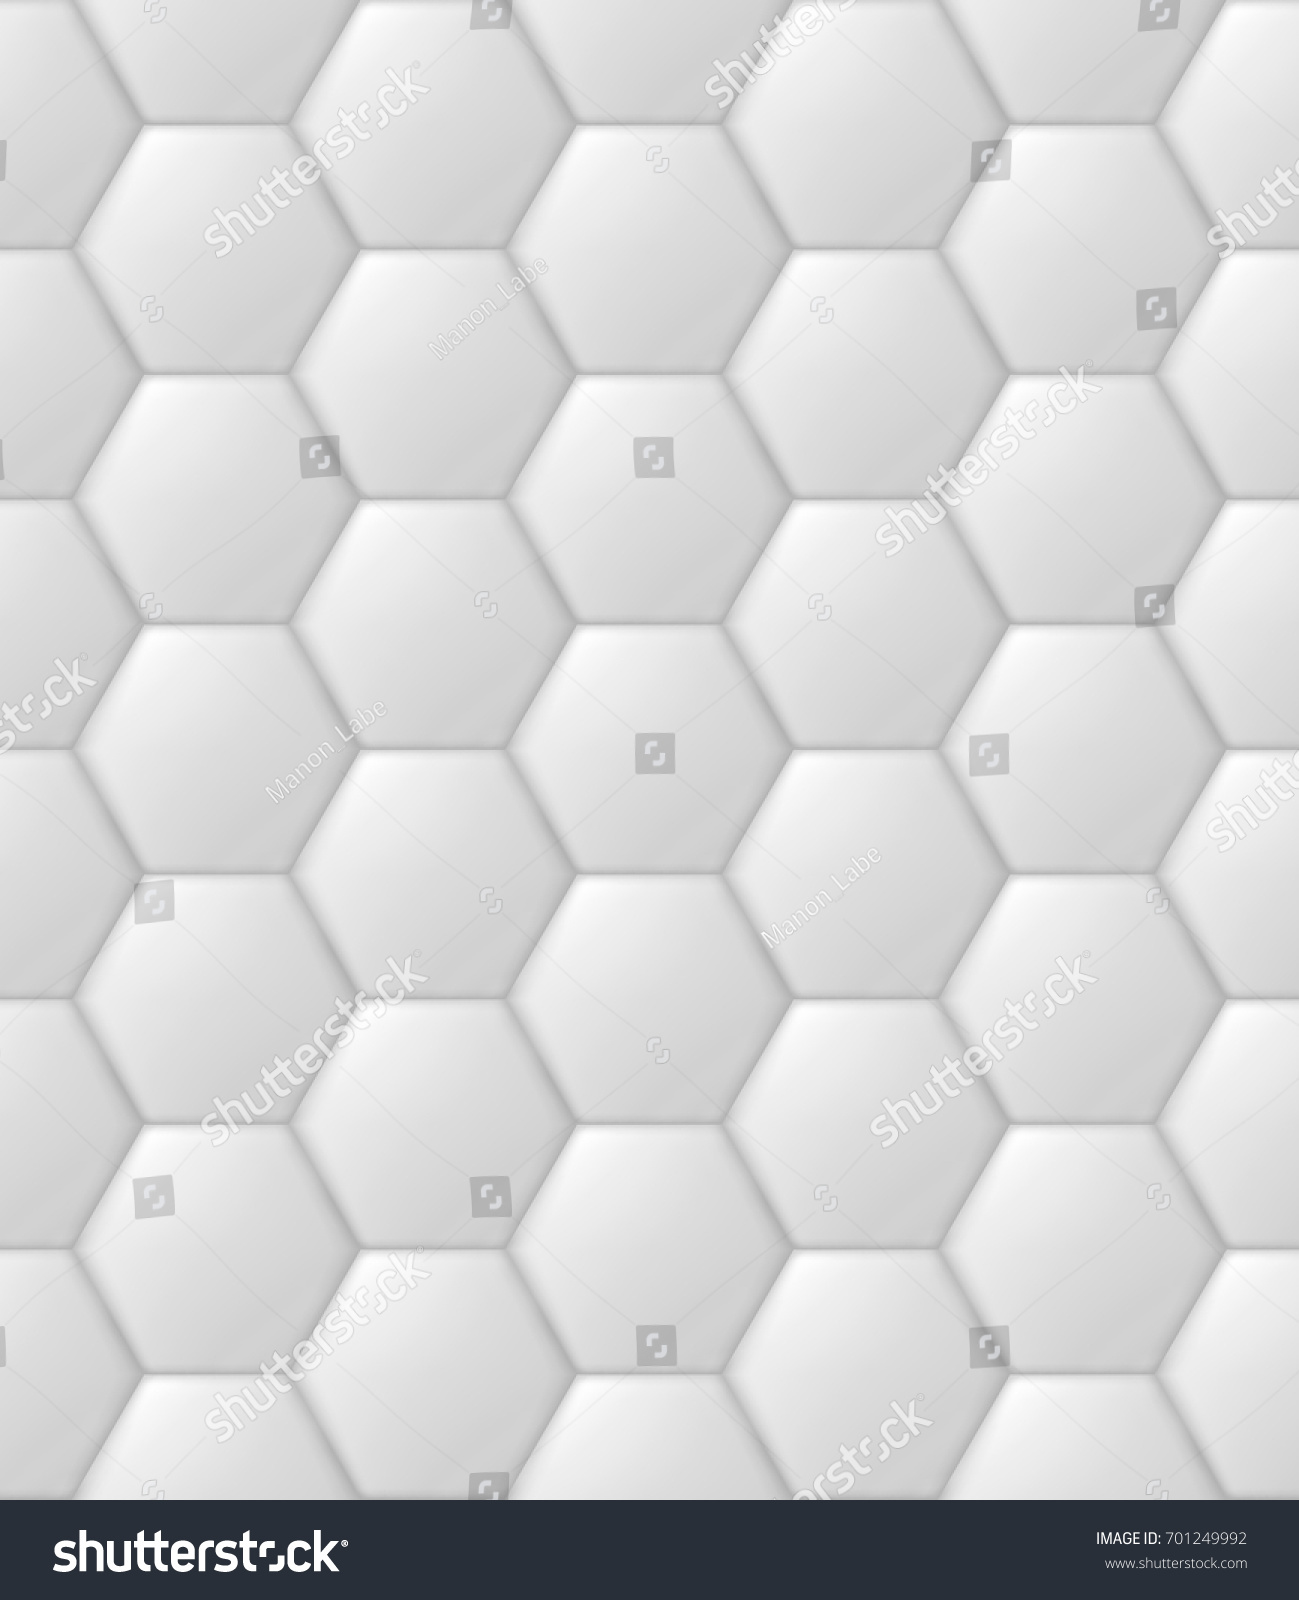 Hexagon Hive Futuristic Padded Wall Quilted Stock Vector (Royalty ...